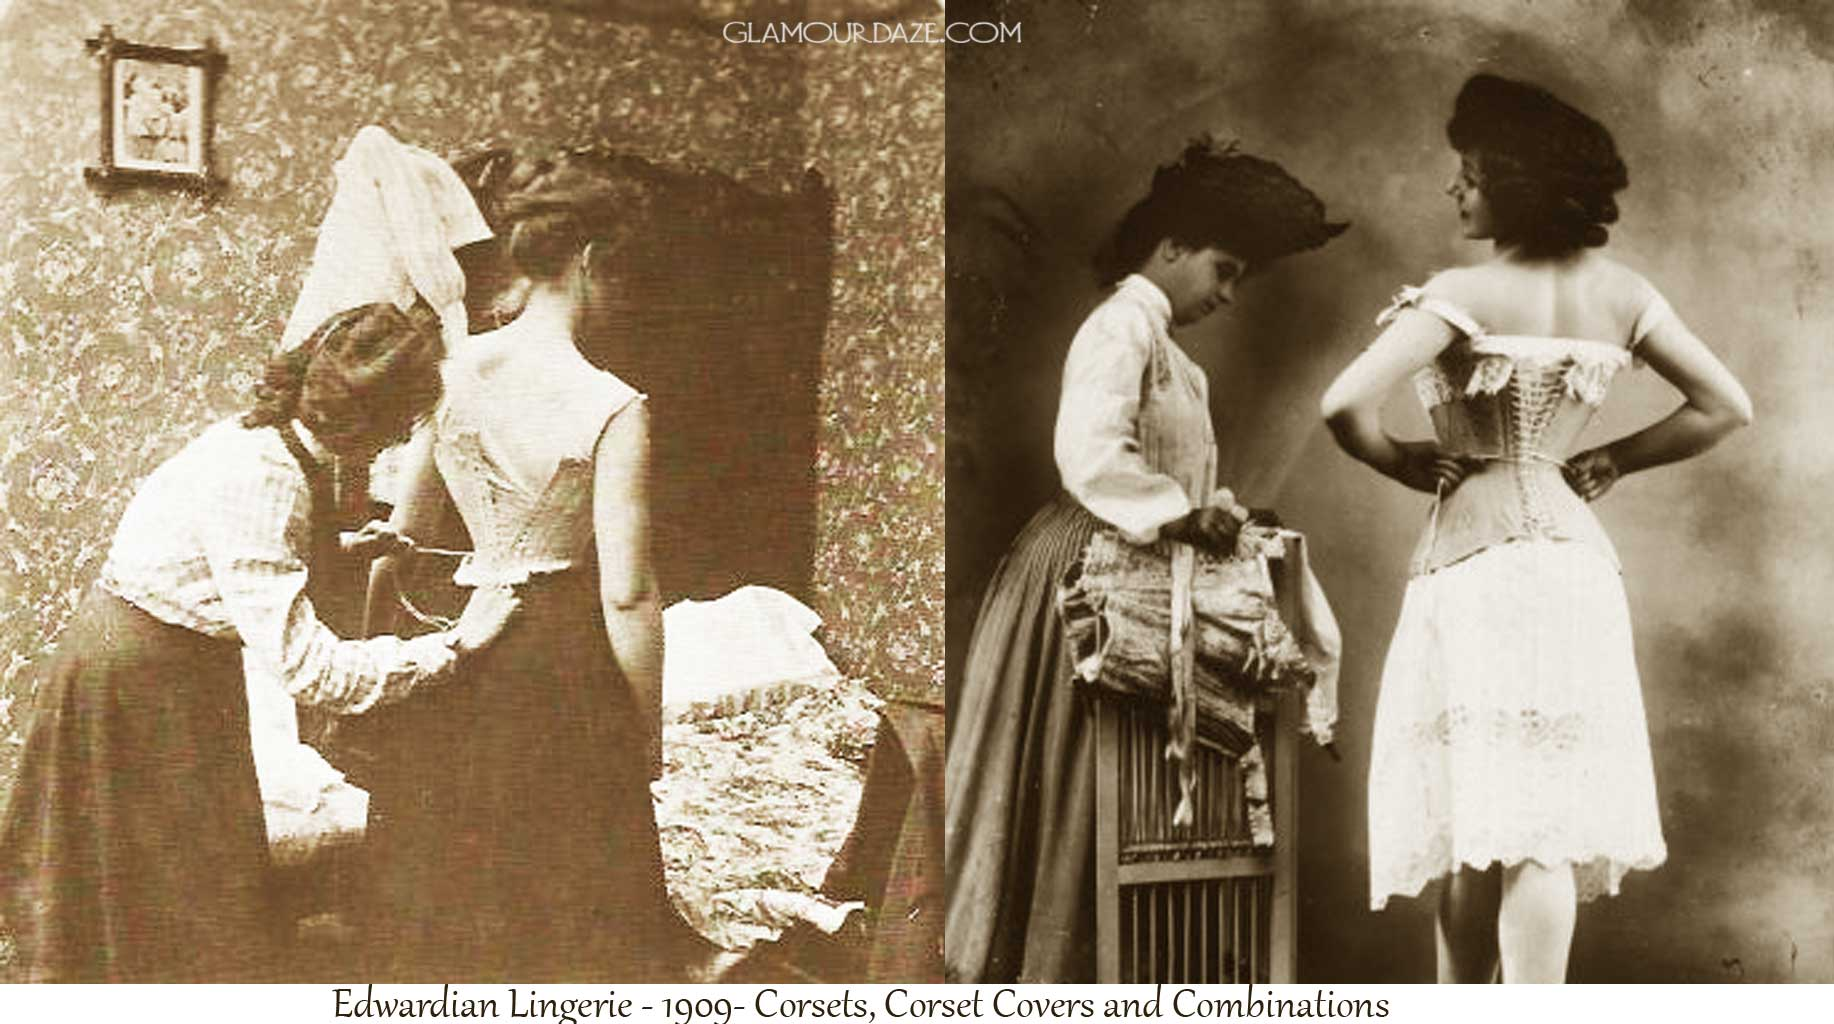 Why did women wear tight bodice in the 1900s?